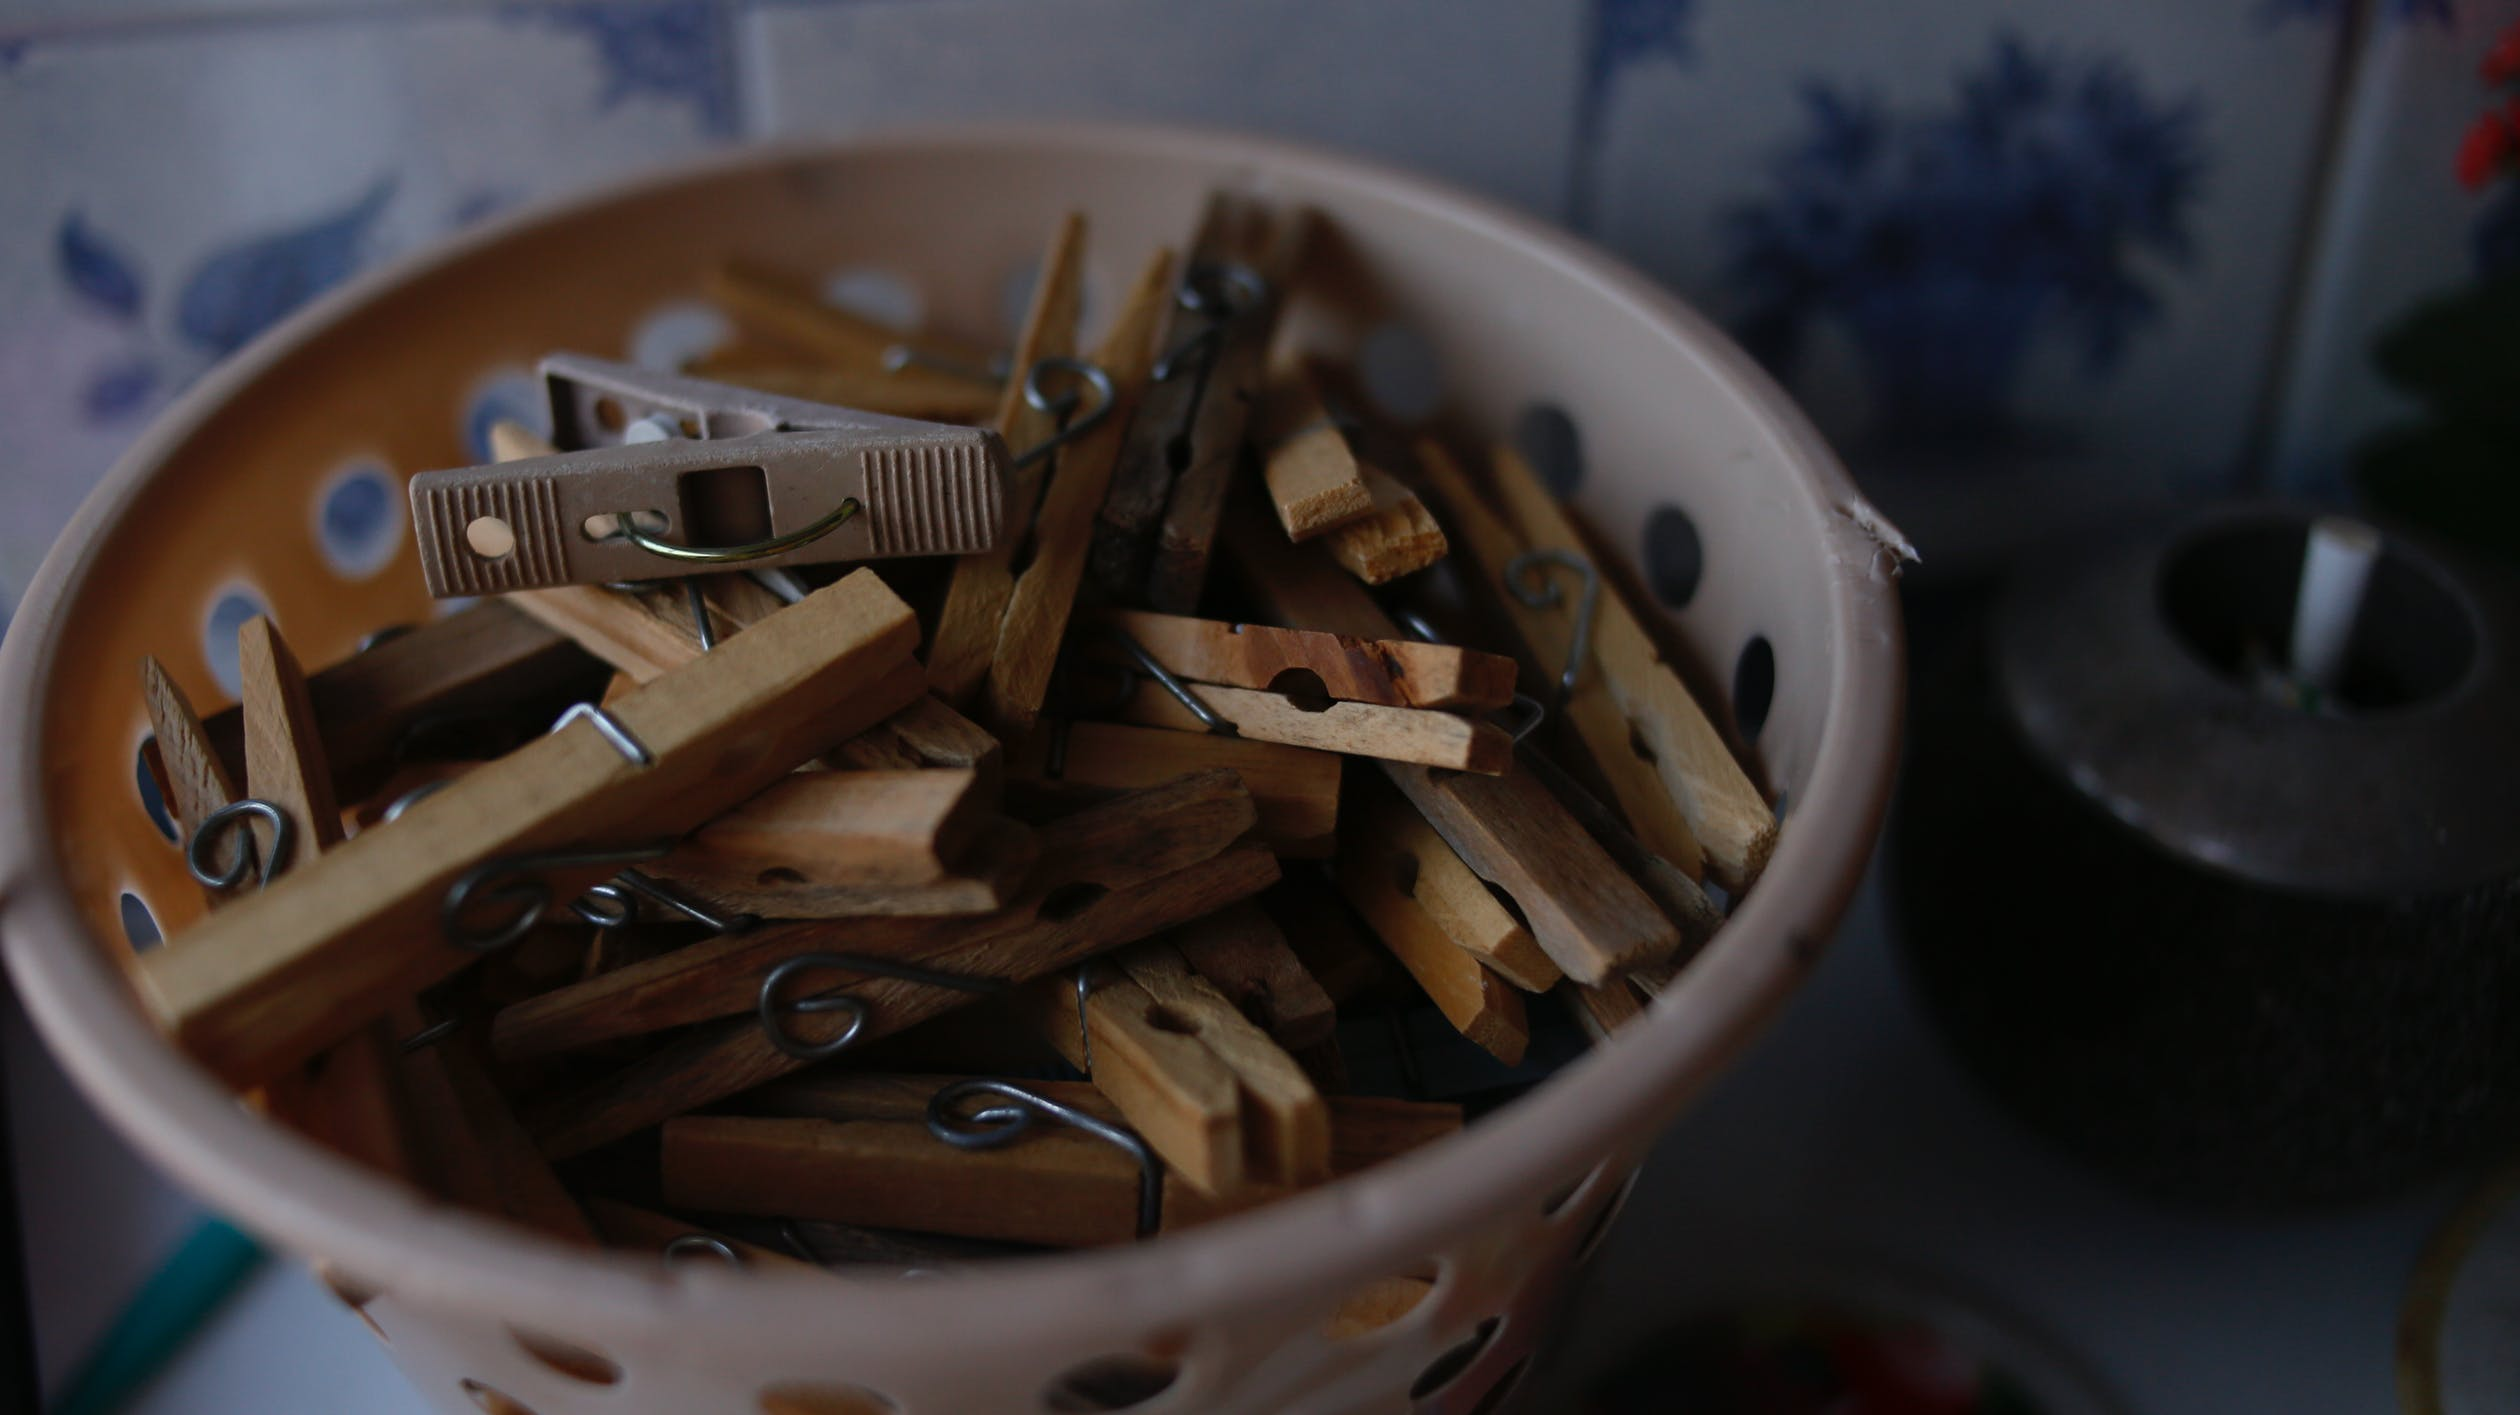 Basket of wooden clothes pegs